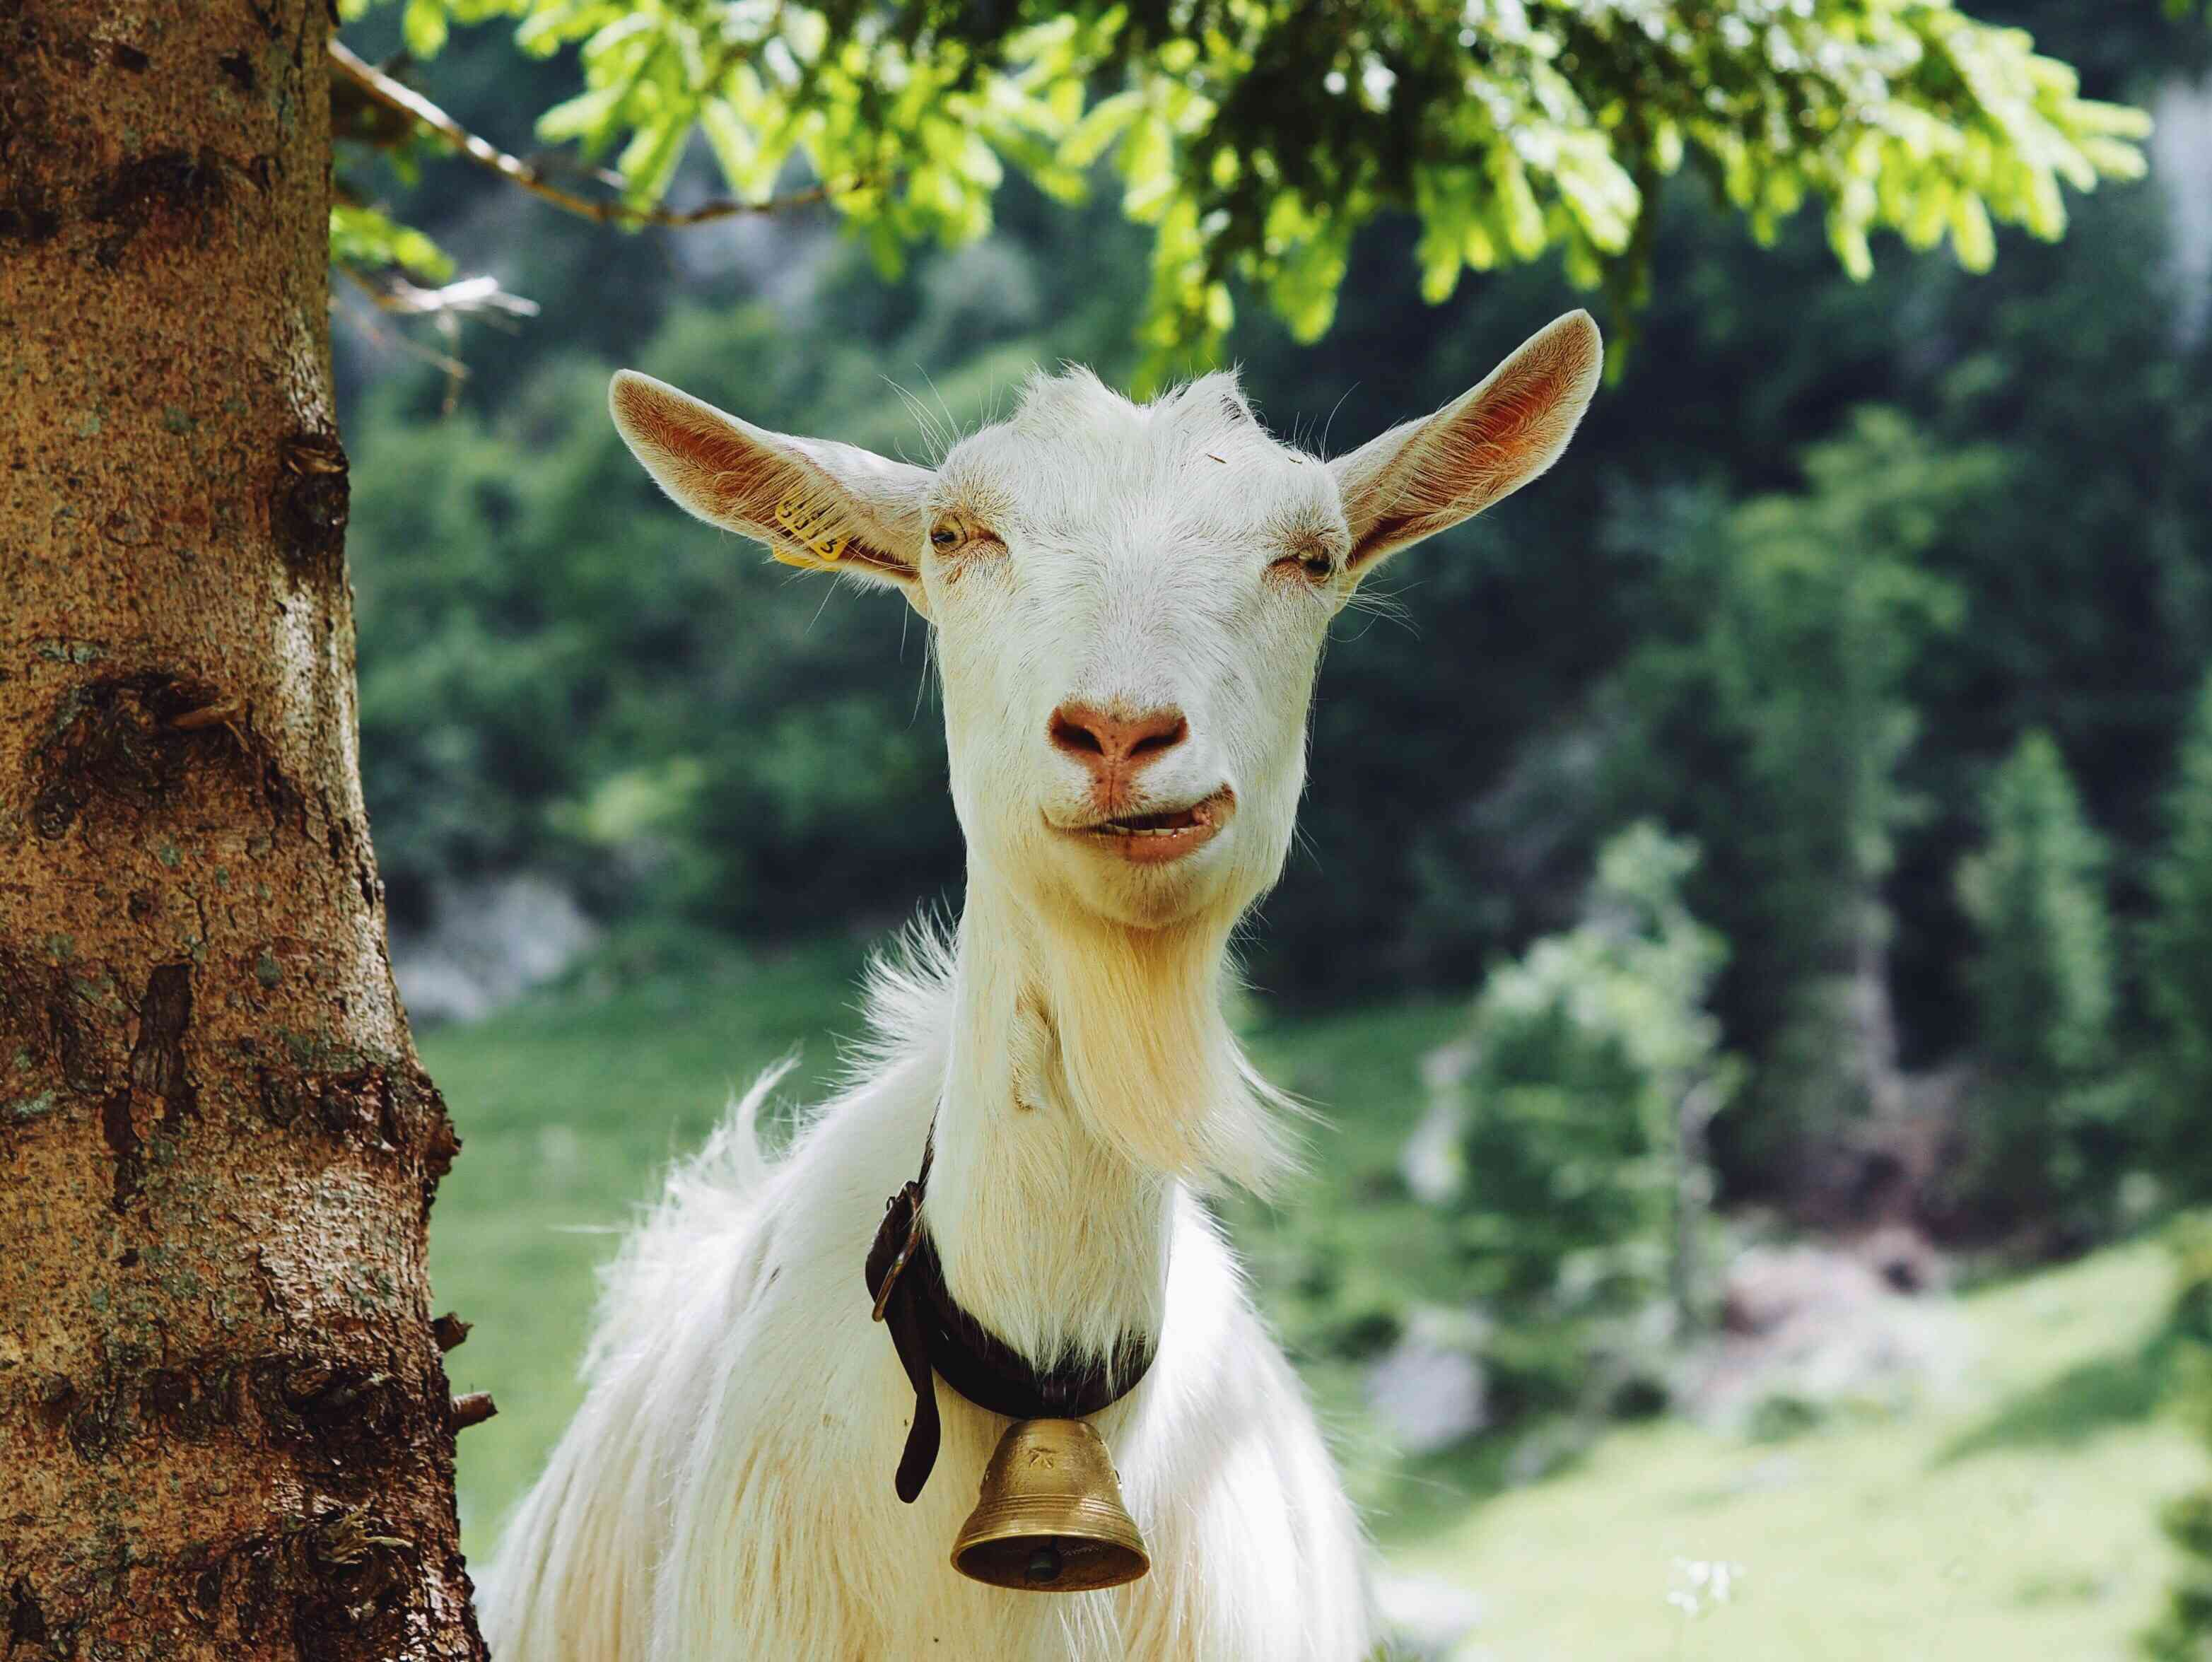 Goat with a bell around its neck standing next to a tree